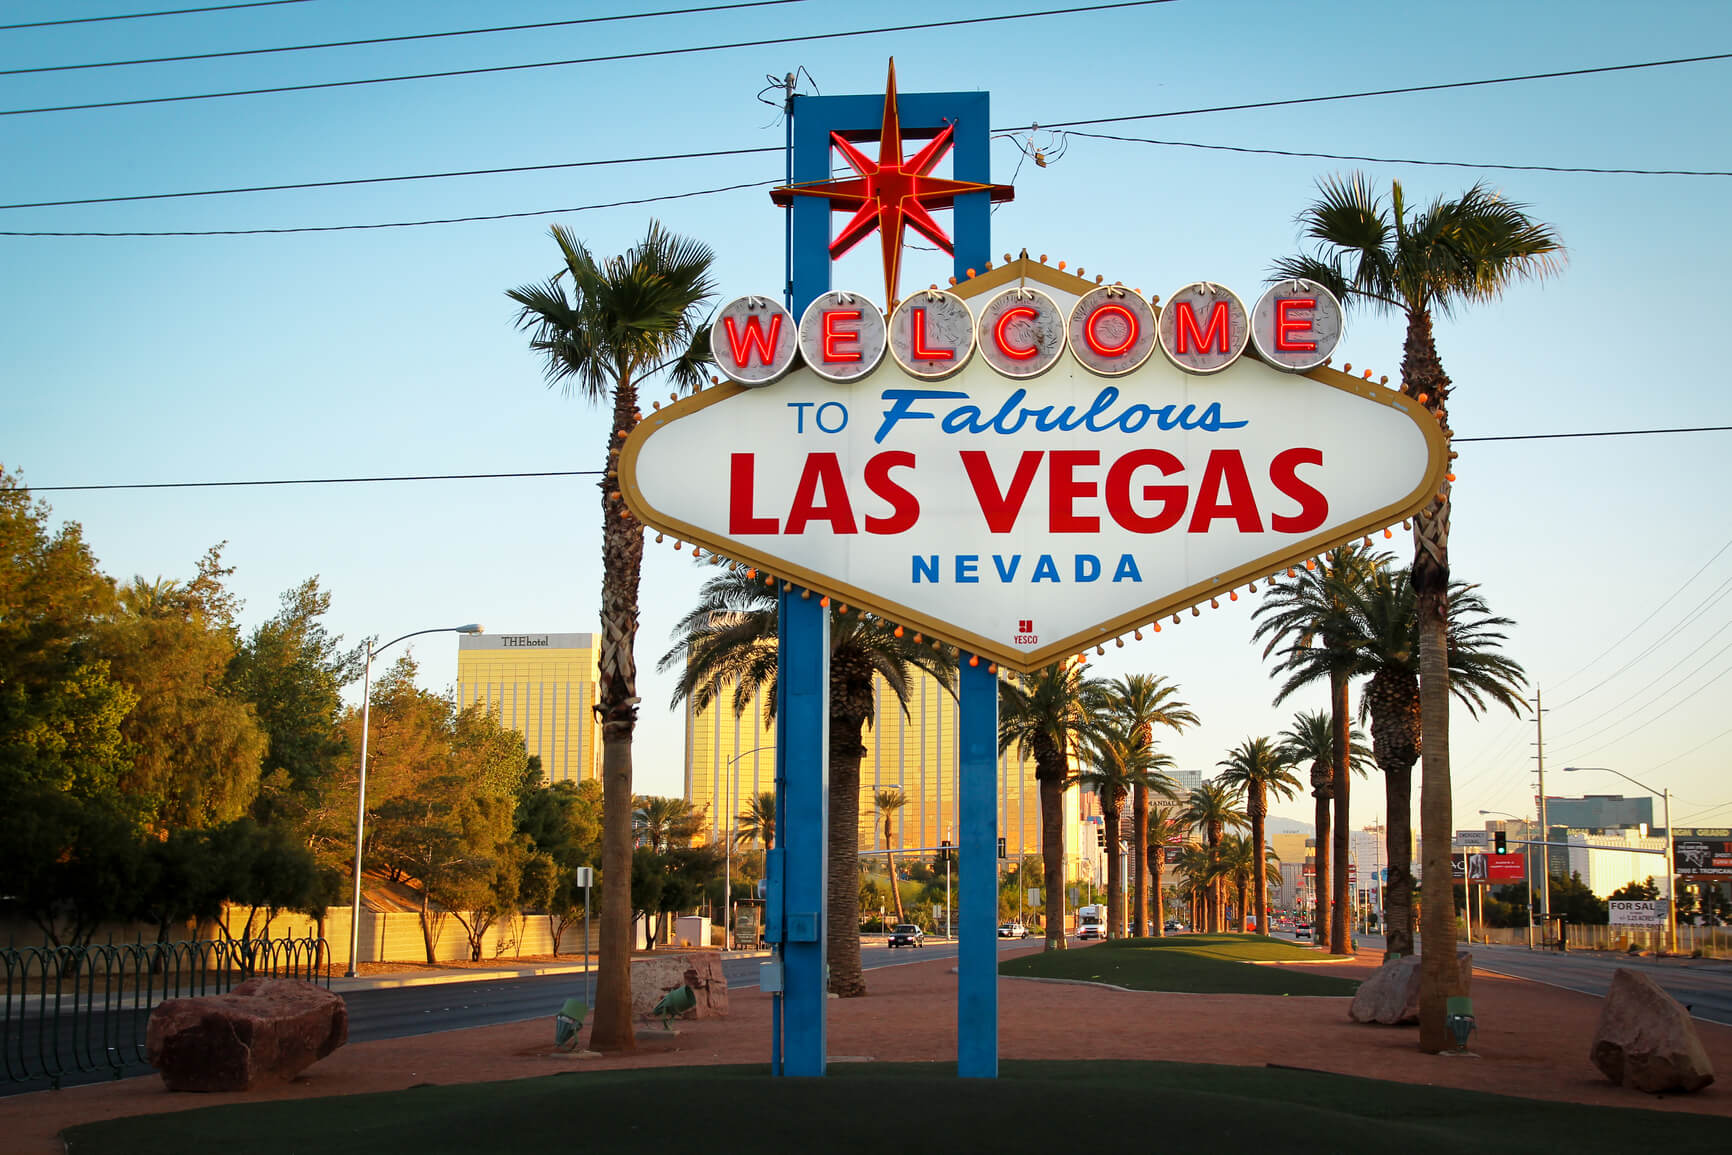 CRAZY HOT!! Non-stop from Fort Lauderdale to Las Vegas (& vice versa) for only $70 roundtrip